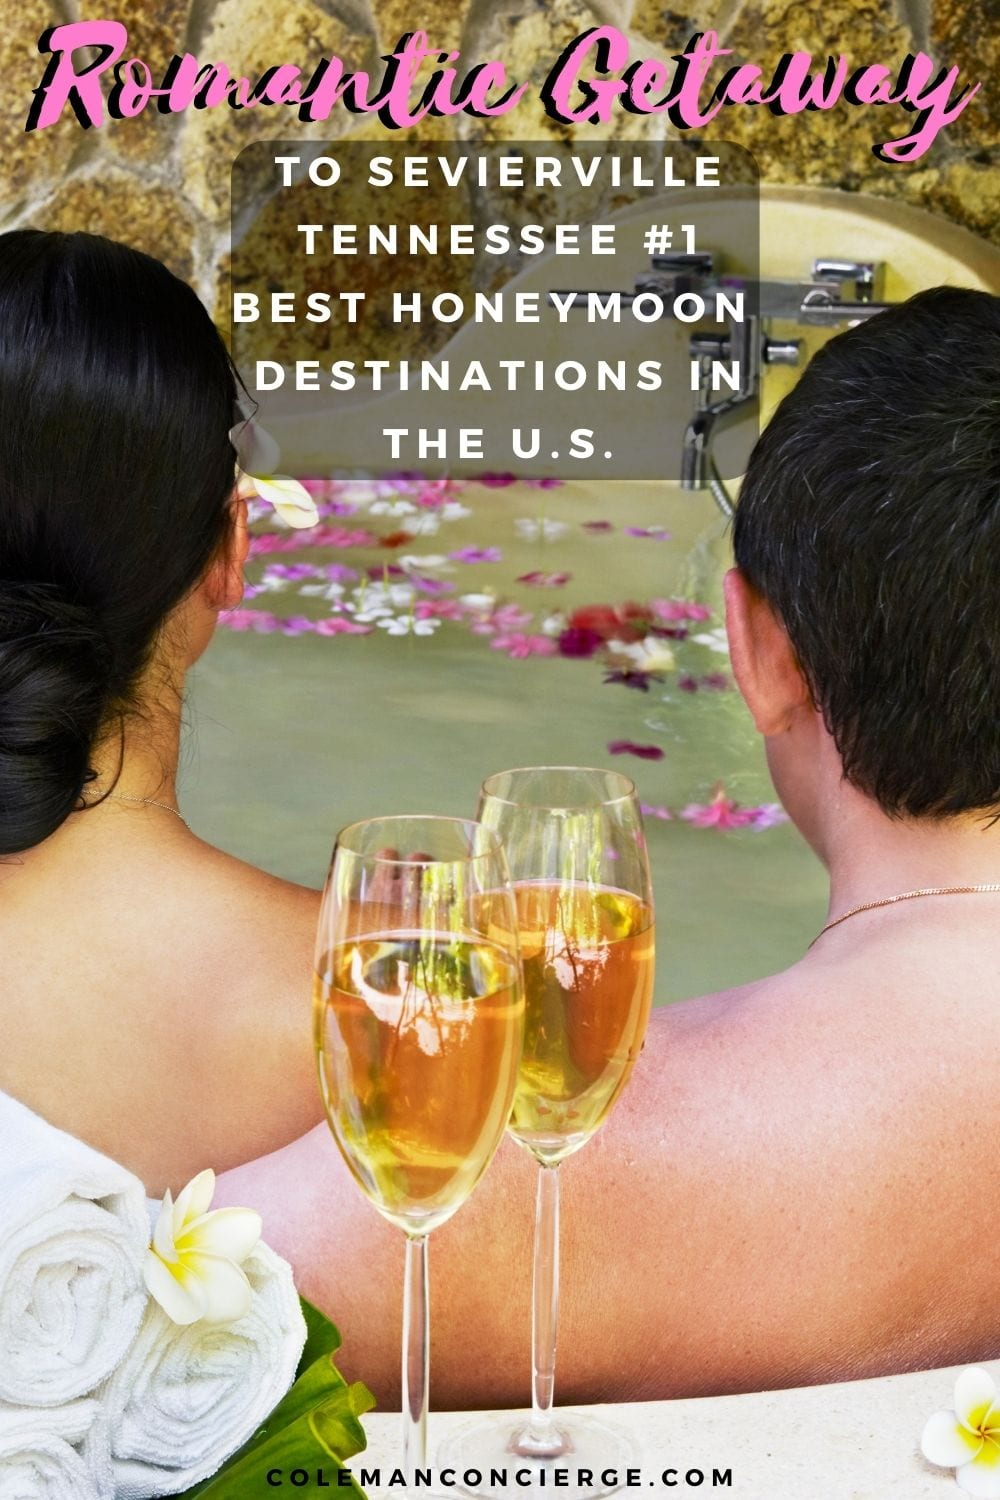 Couple in hot tub with champagne